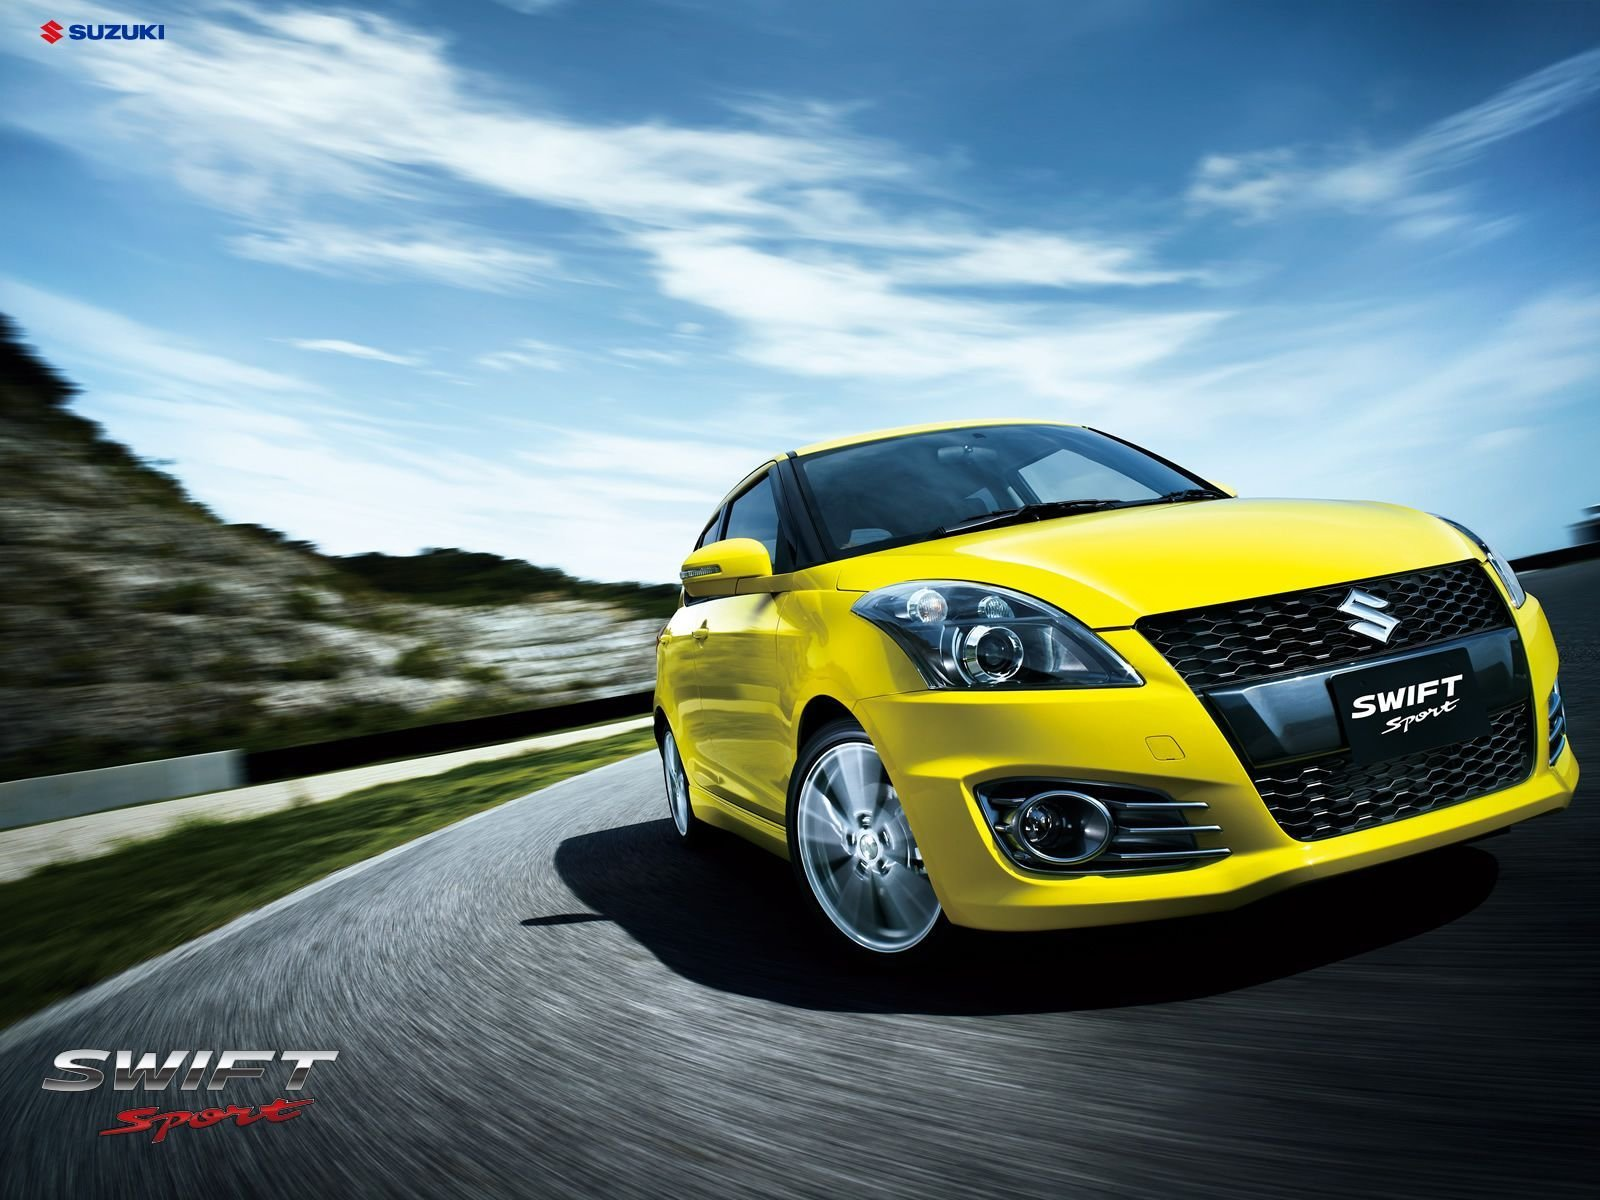 Latest Suzuki Swift Sport Wallpaper With A Blistering New Design Free Download